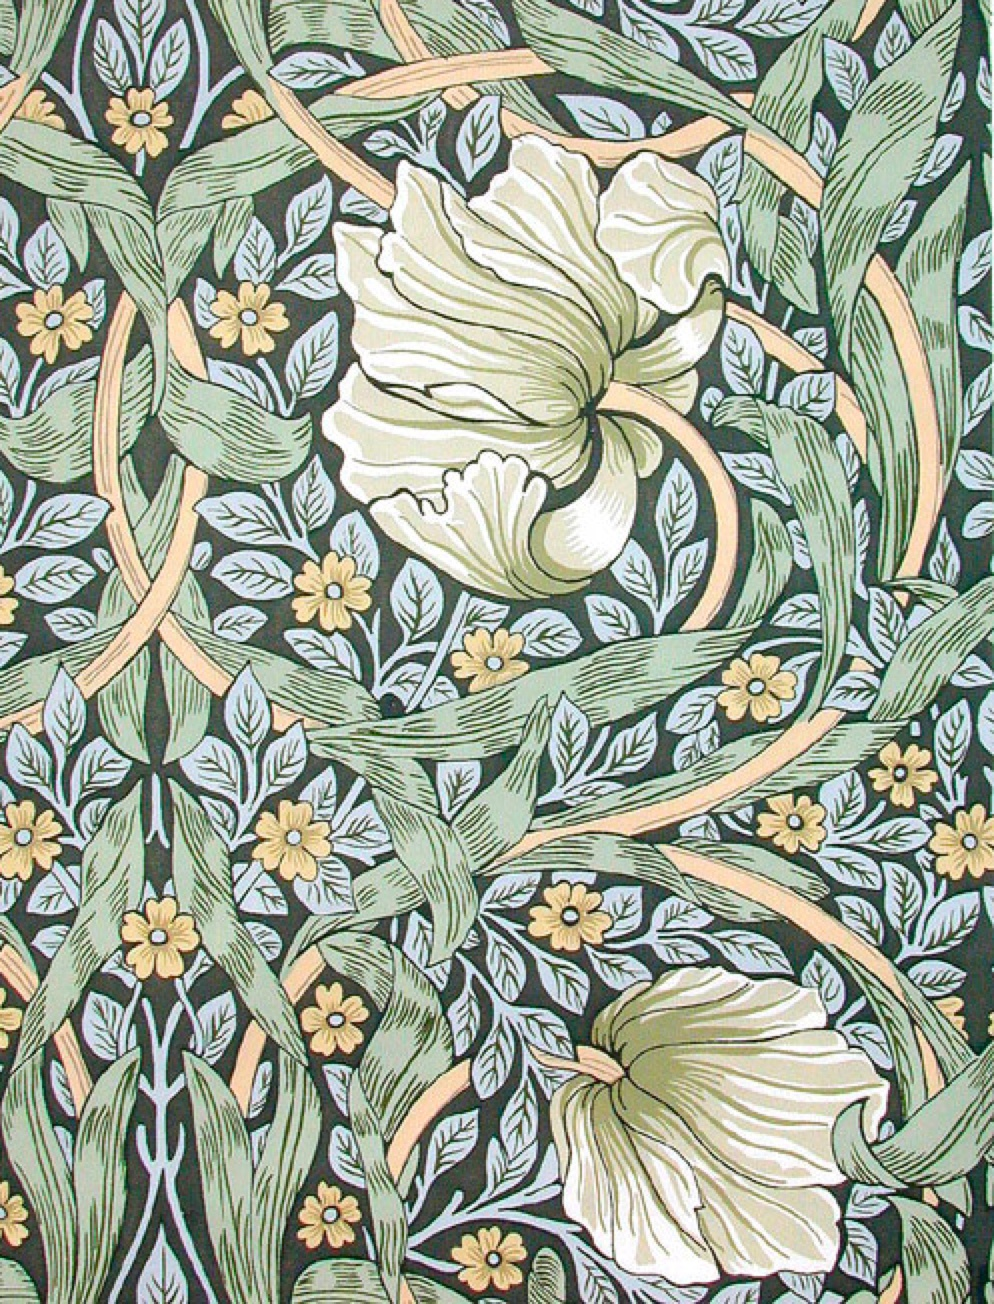 Art Deco Nouveau: Vintage Wallpaper Patterns